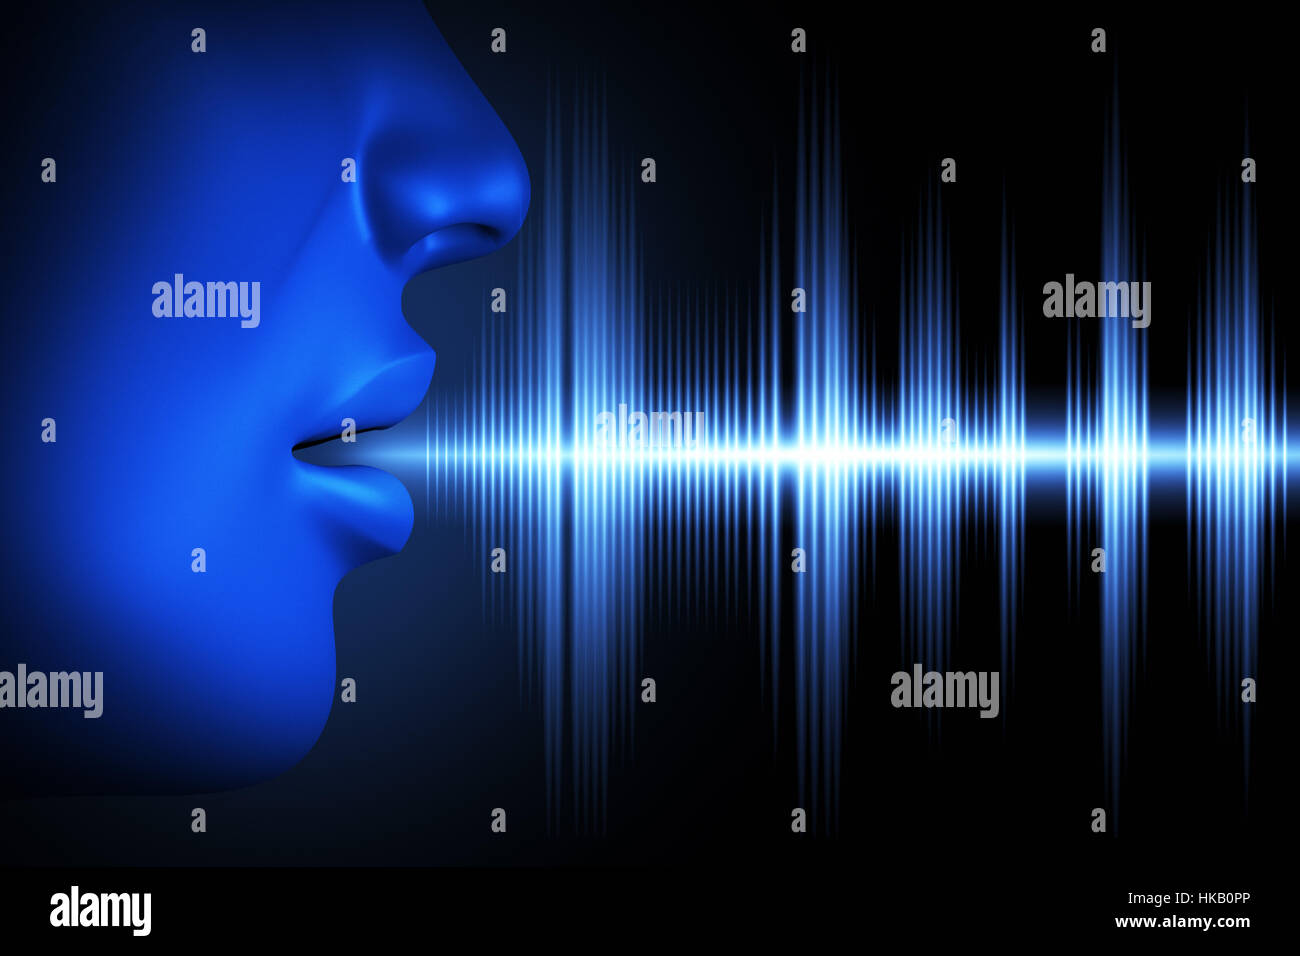 Conceptual image about human voice - Stock Image